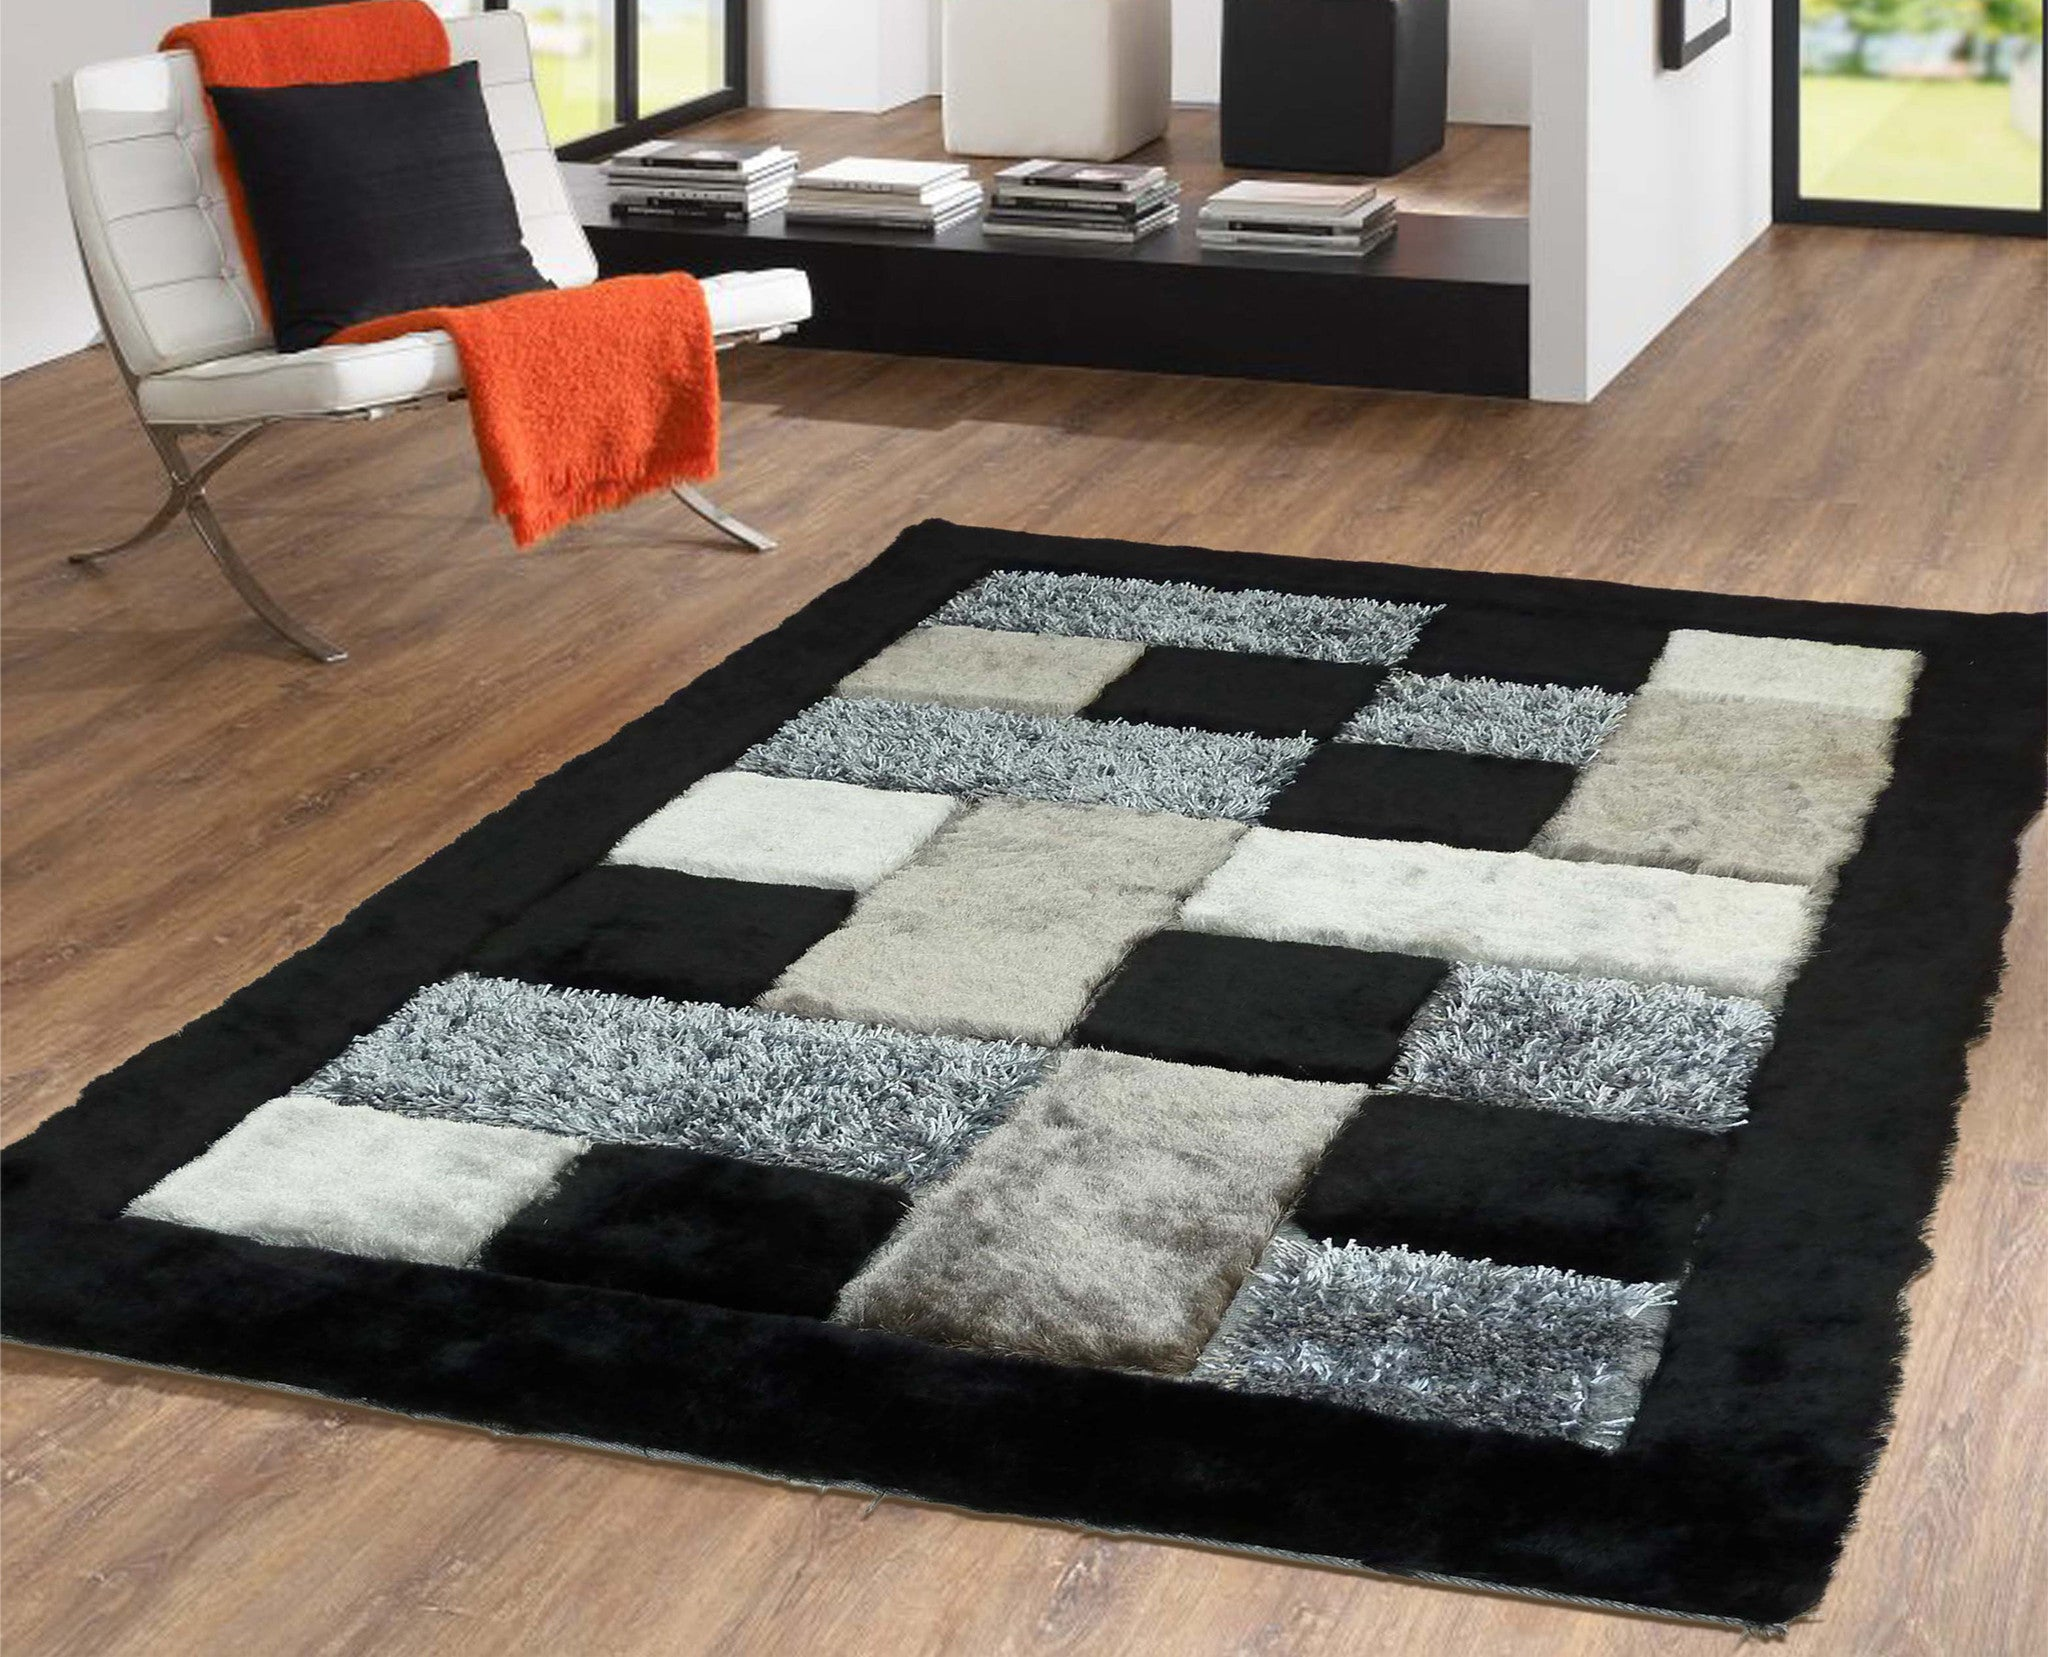 Shag Rug In Grey And Black With Design By Rug Addiction